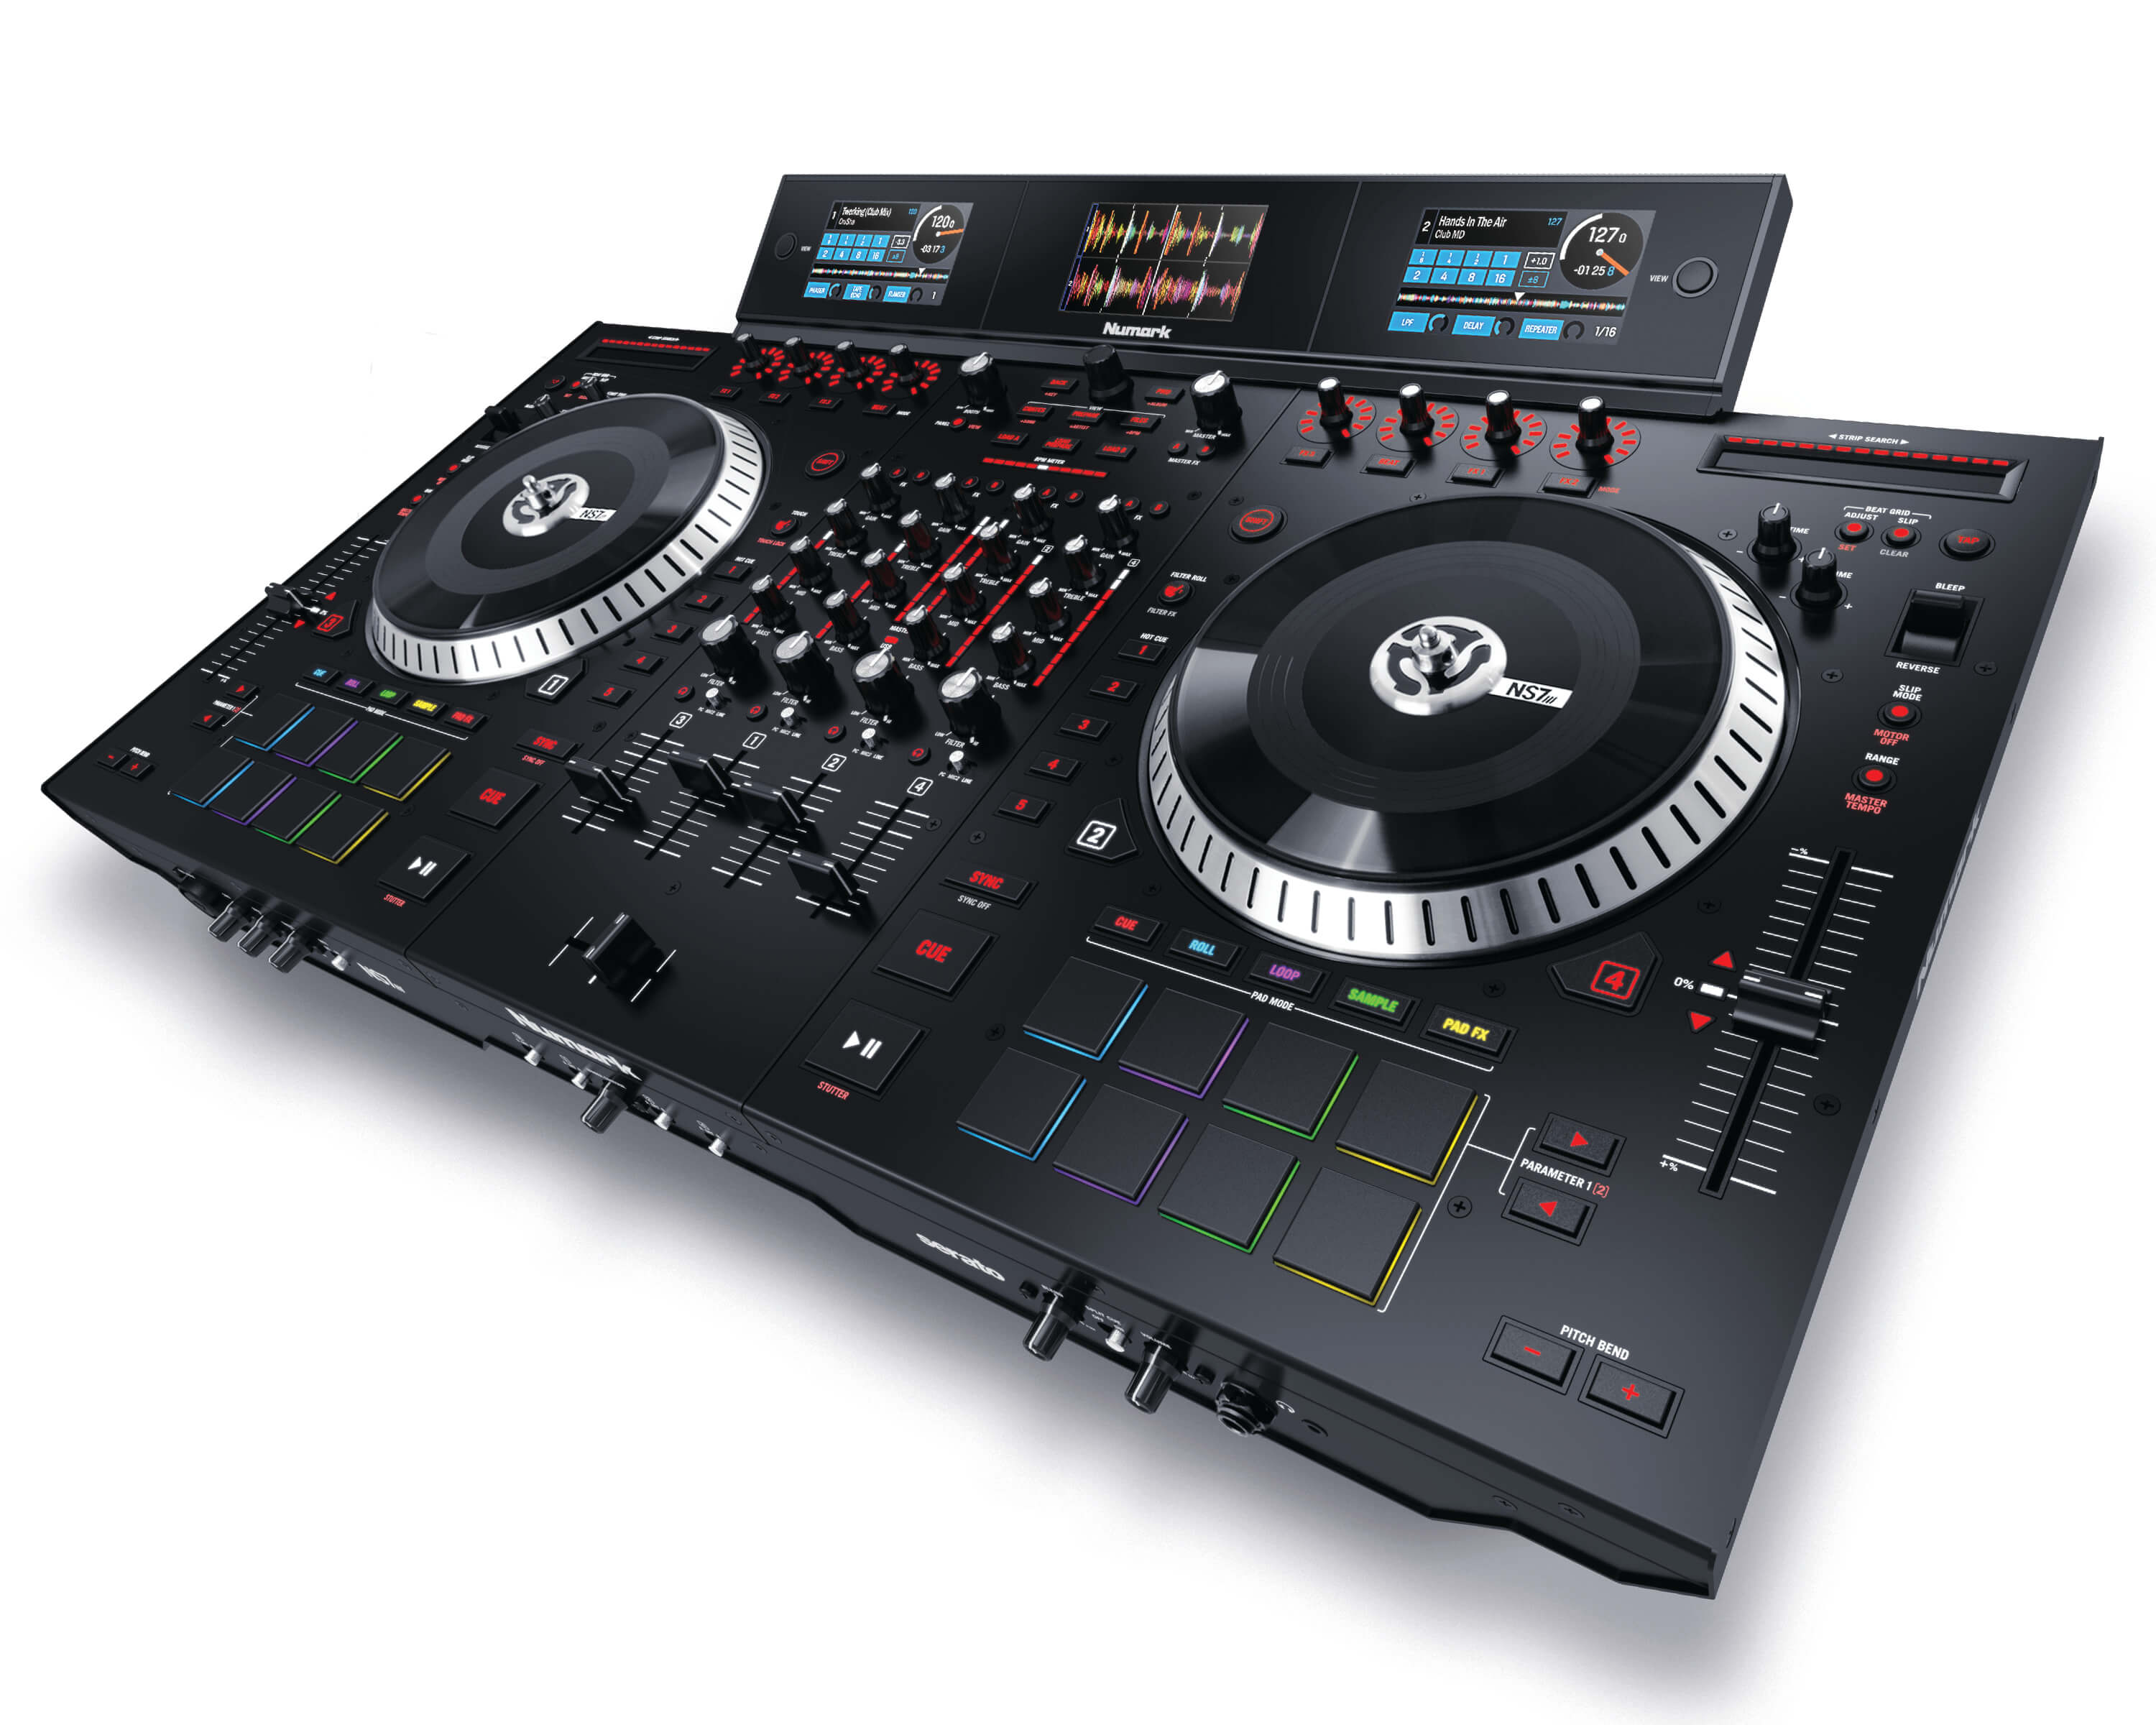 Numark NS7 III 4 Channel Motorized DJ Controller & Mixer With Screens